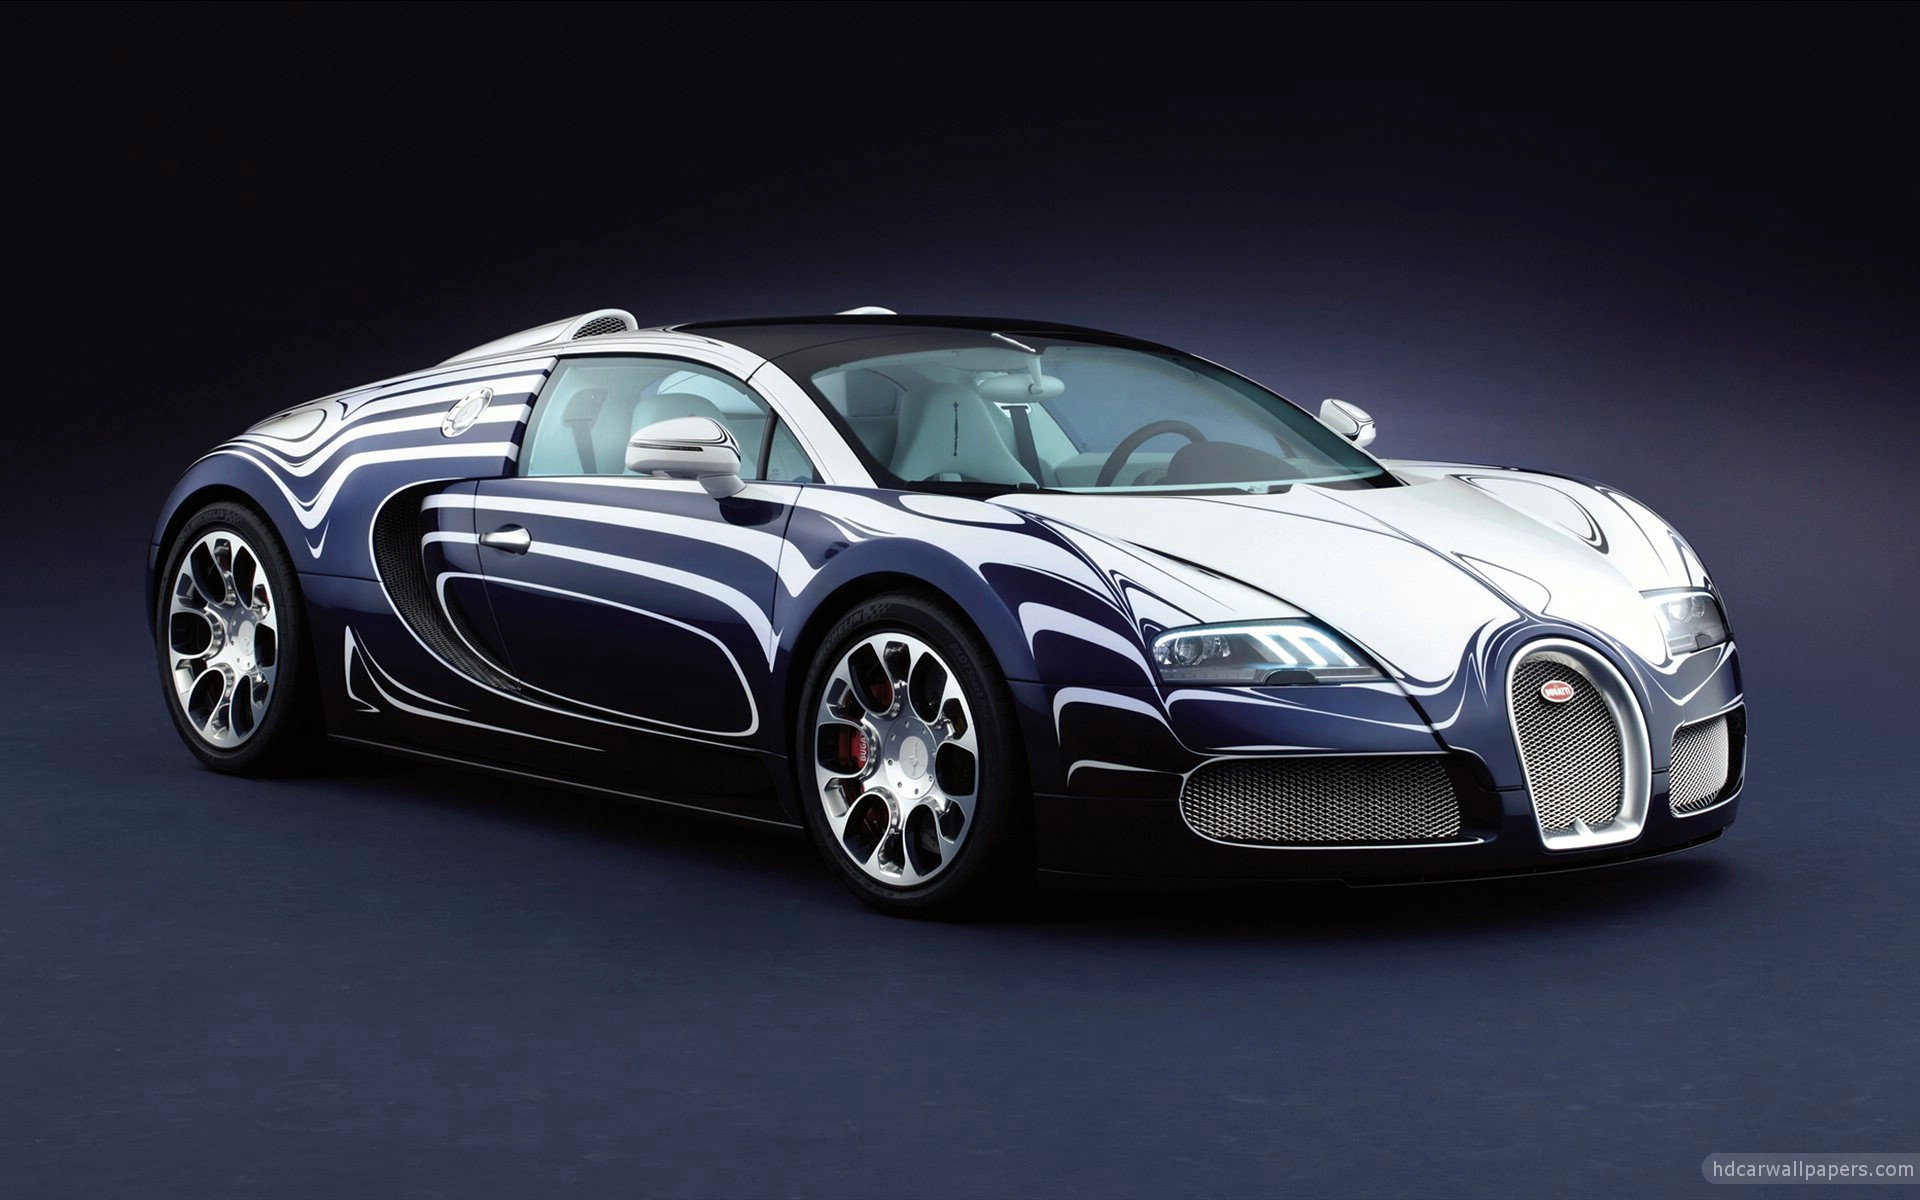 Cars Bugatti Veyron Grand Sport wide Free Download Image Of